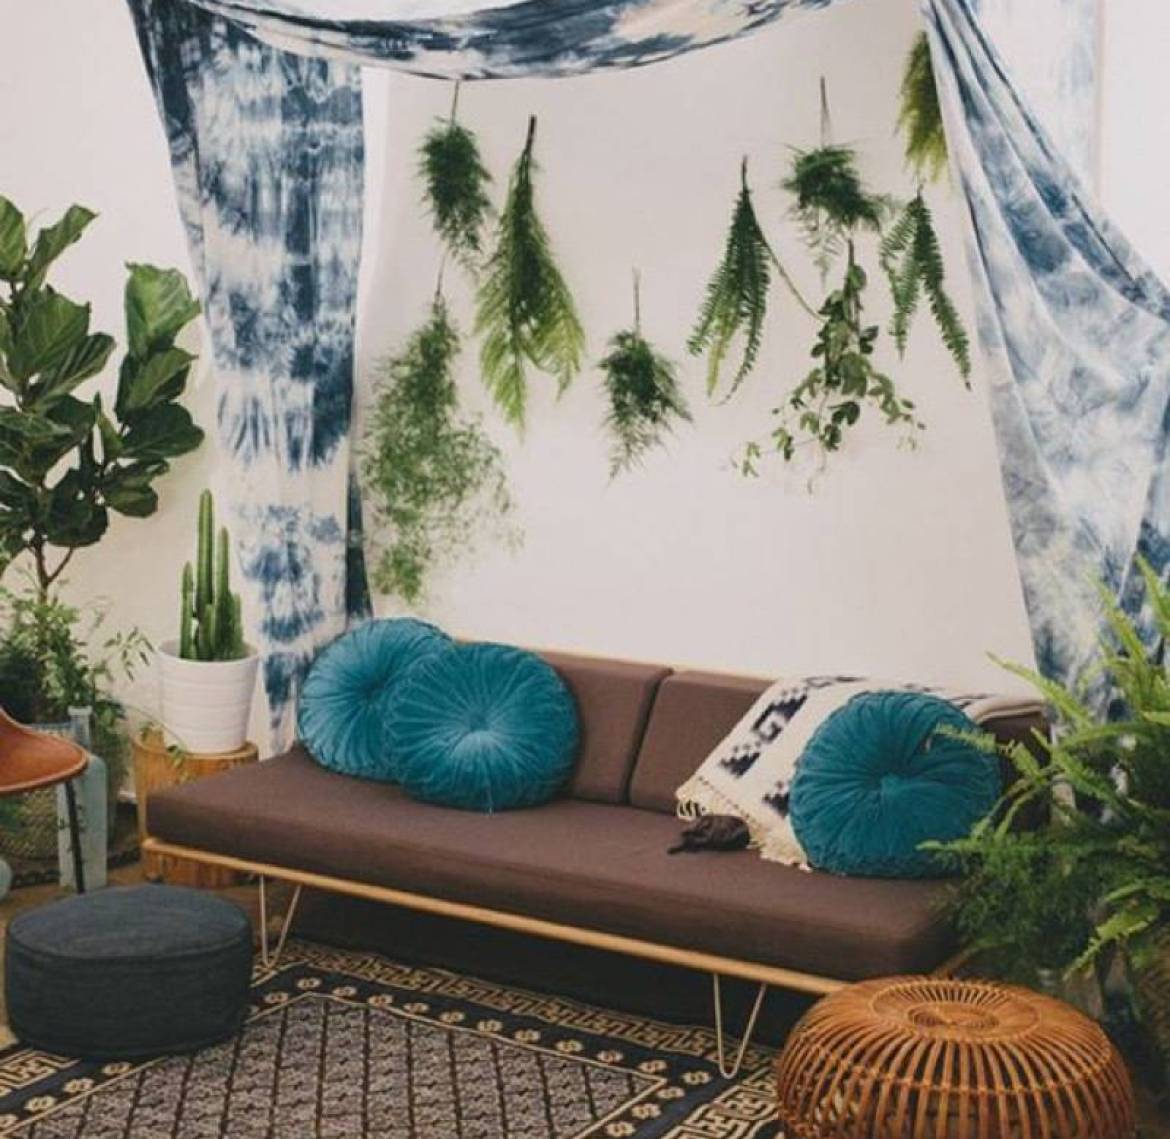 99 ways to use fabric to decorate your home   Hang fabric from the wall